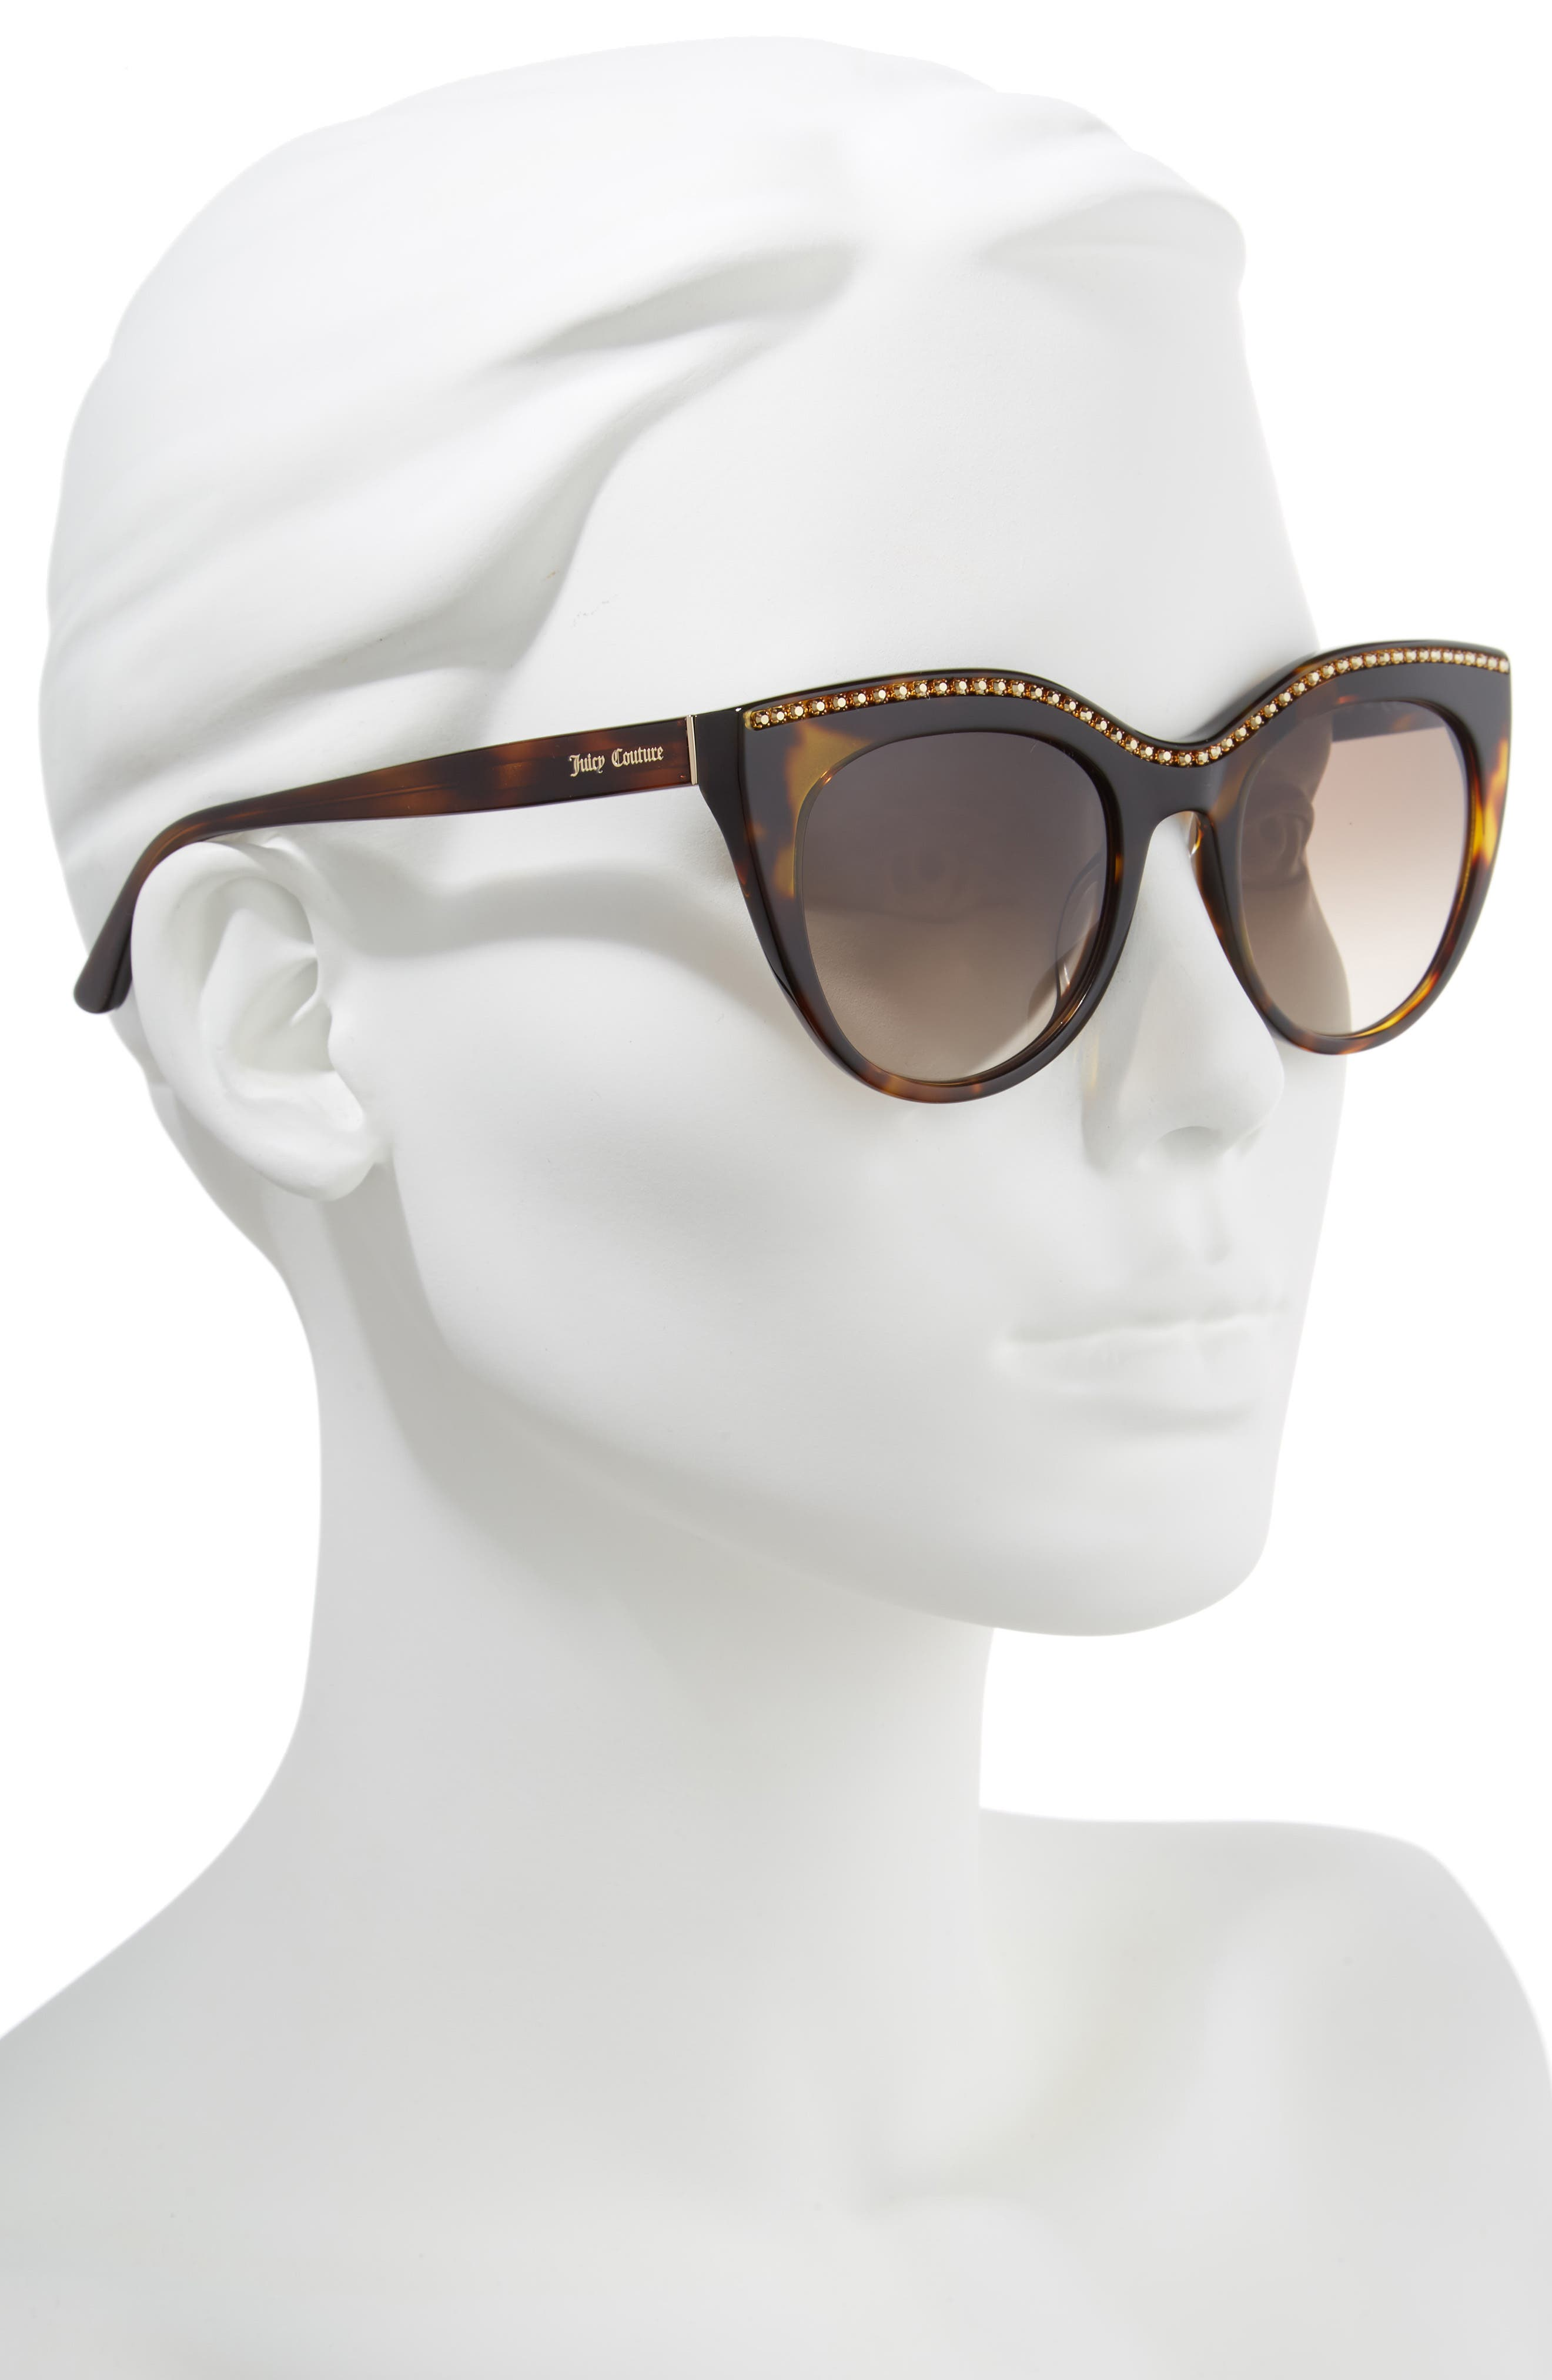 49ceed9211 Juicy Couture Sunglasses for Women